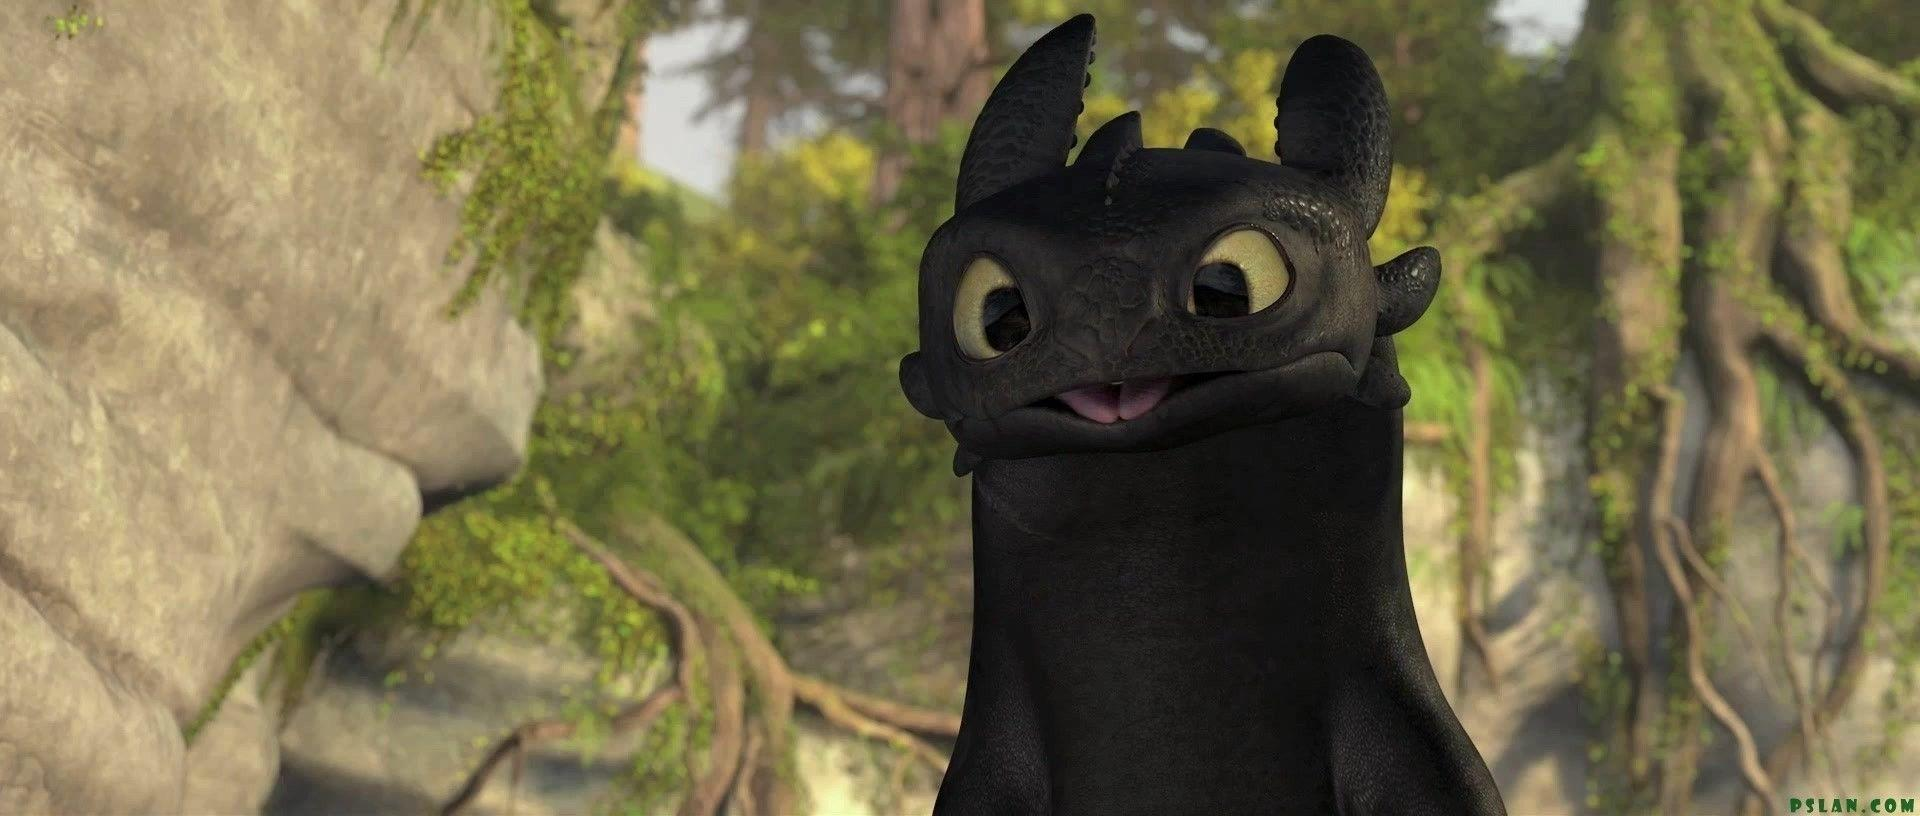 Toothless Pickie - Night Fury Photo (11062330) - Fanpop